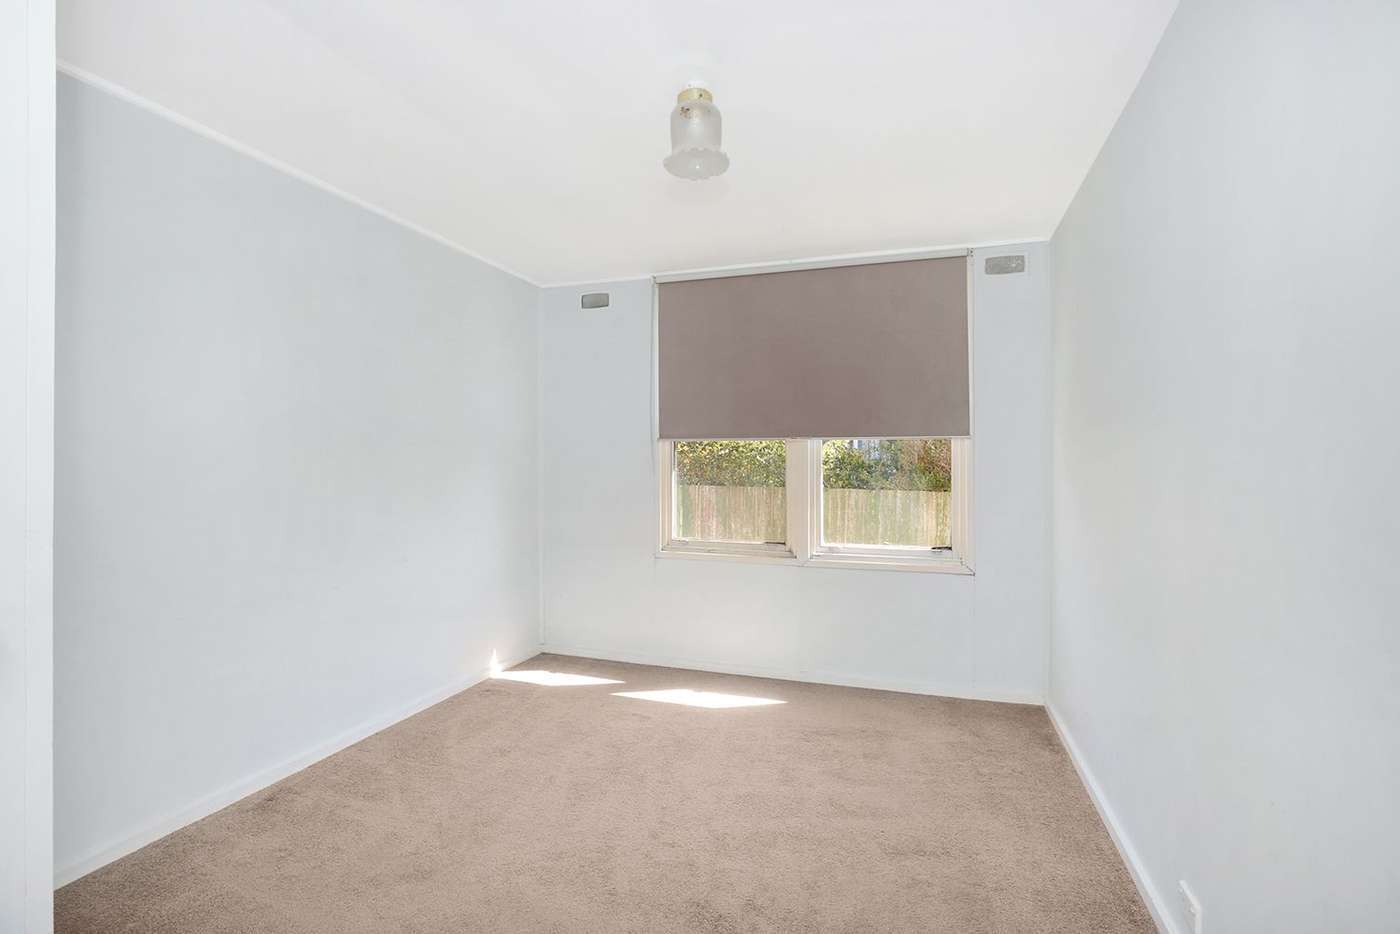 Seventh view of Homely house listing, 8 Jones Street, Camperdown VIC 3260